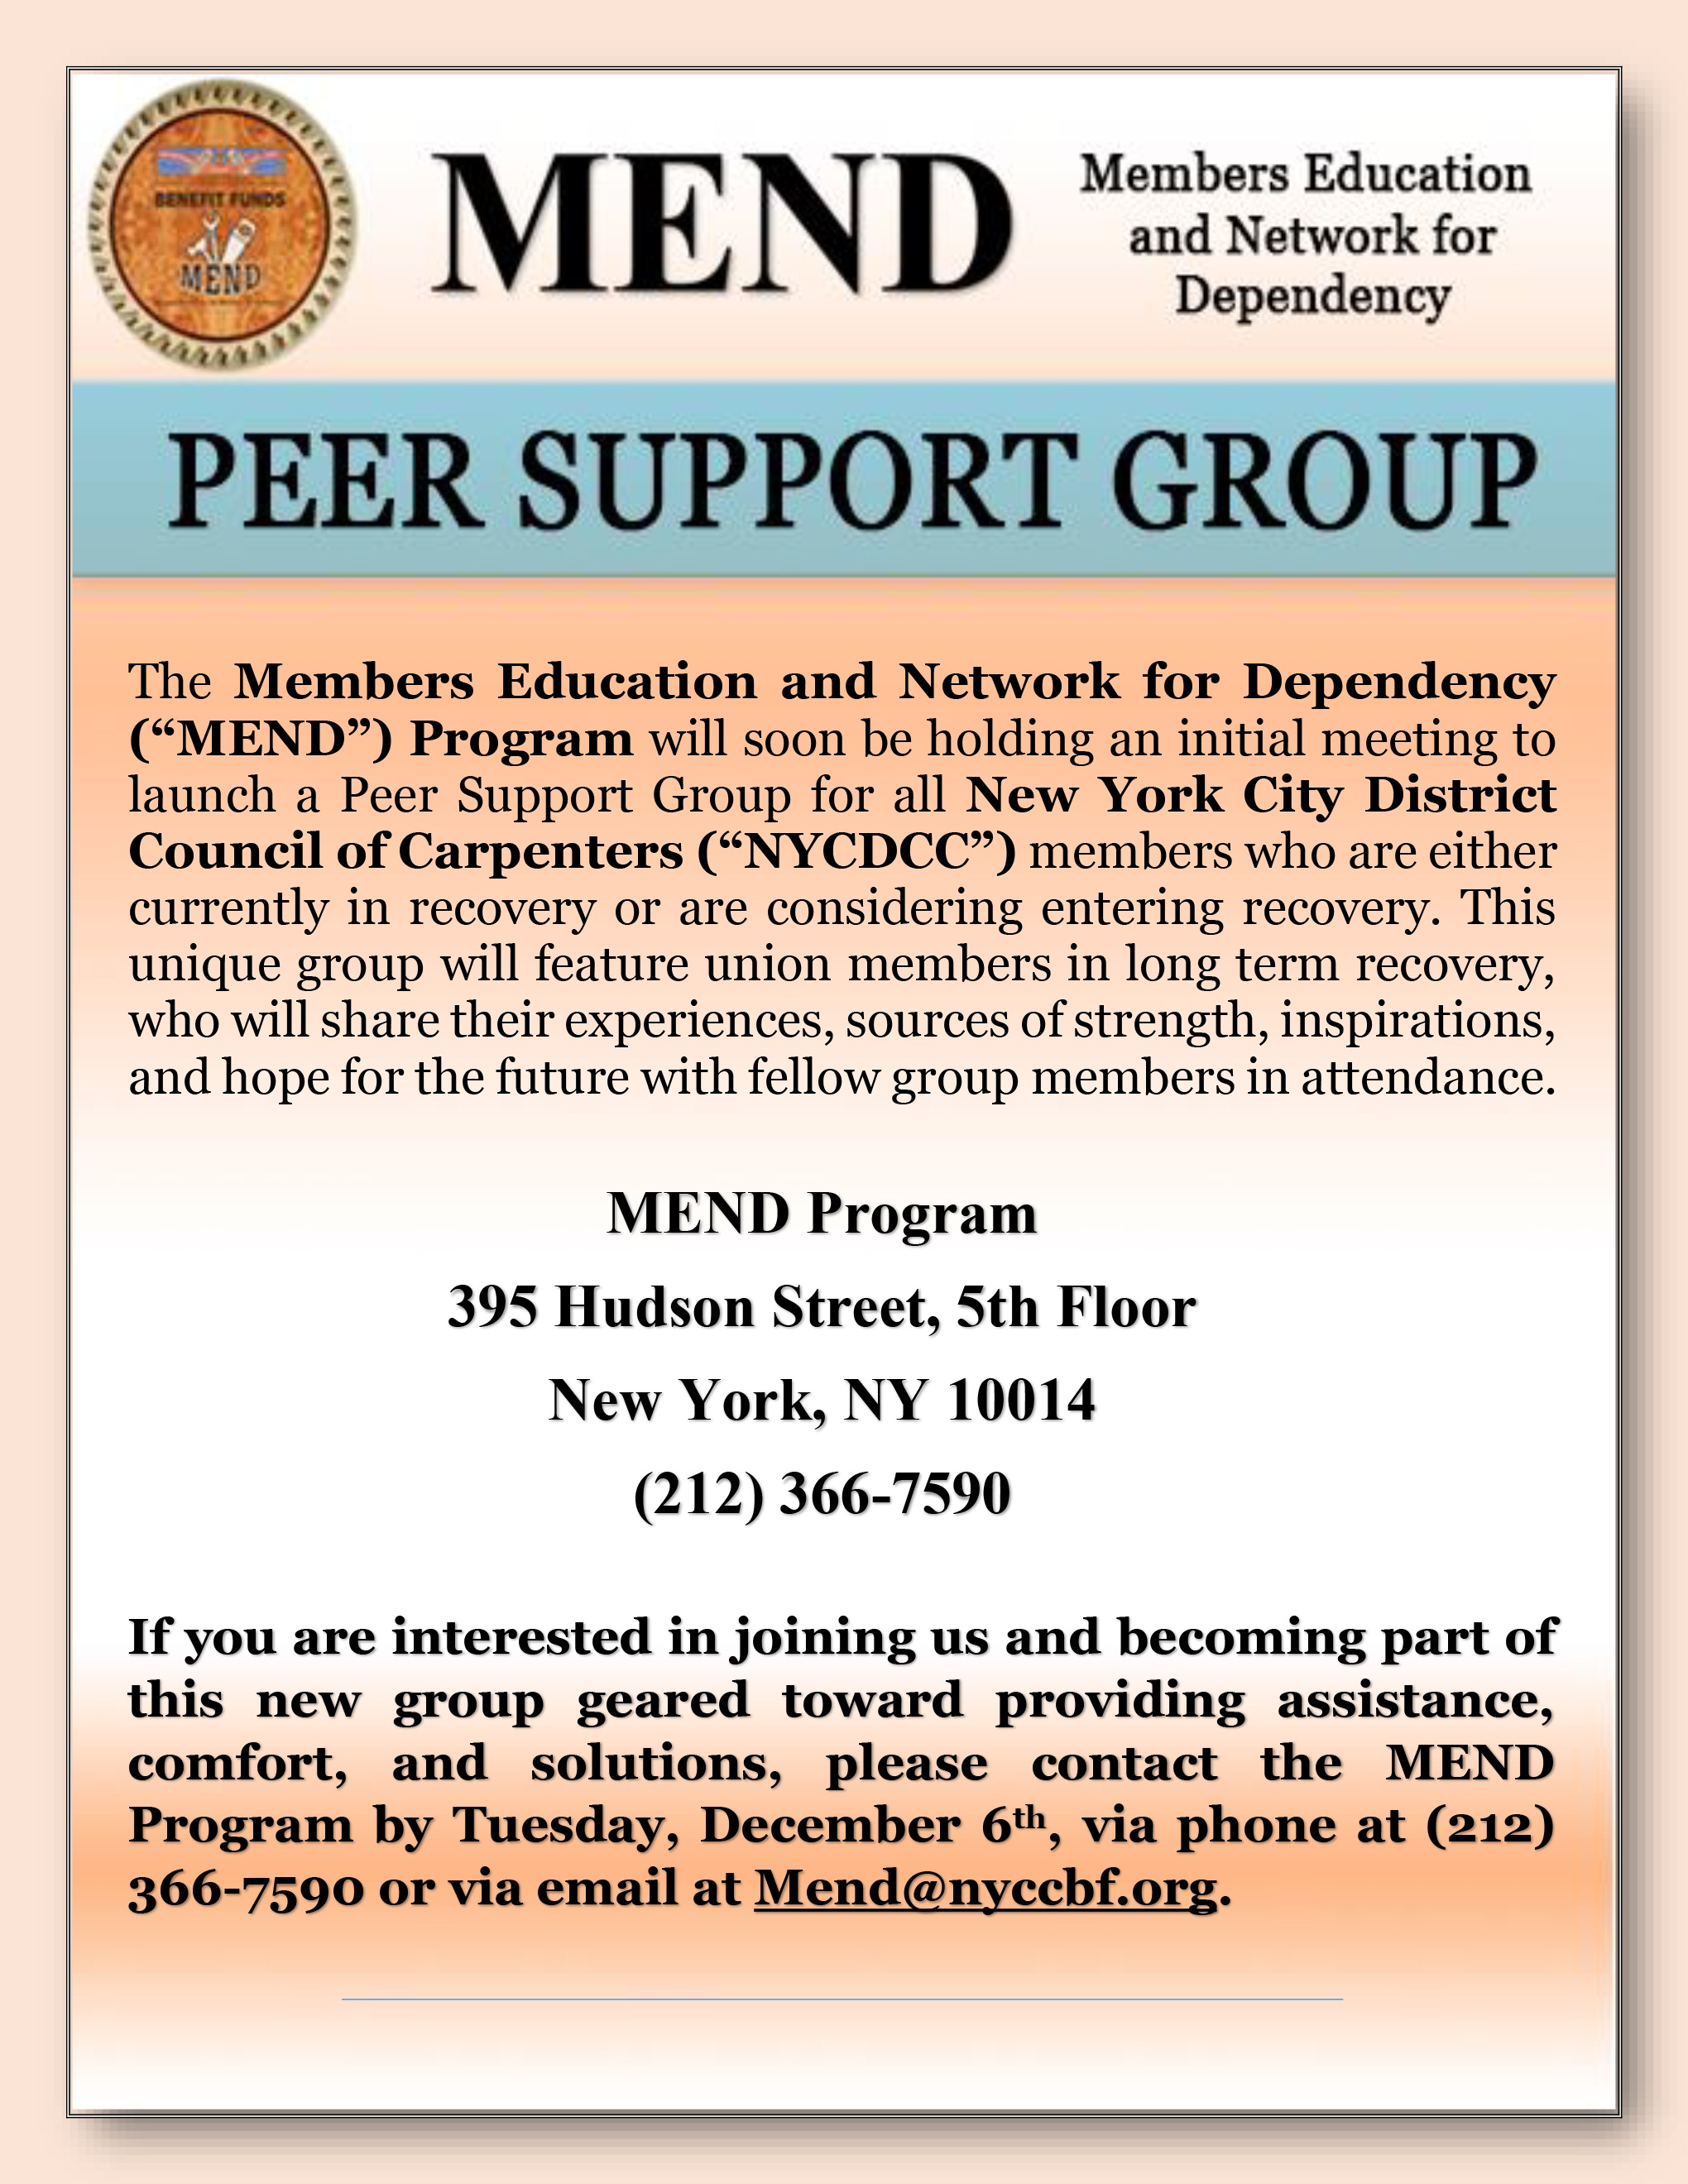 mend-peer-support-group-flyer-01